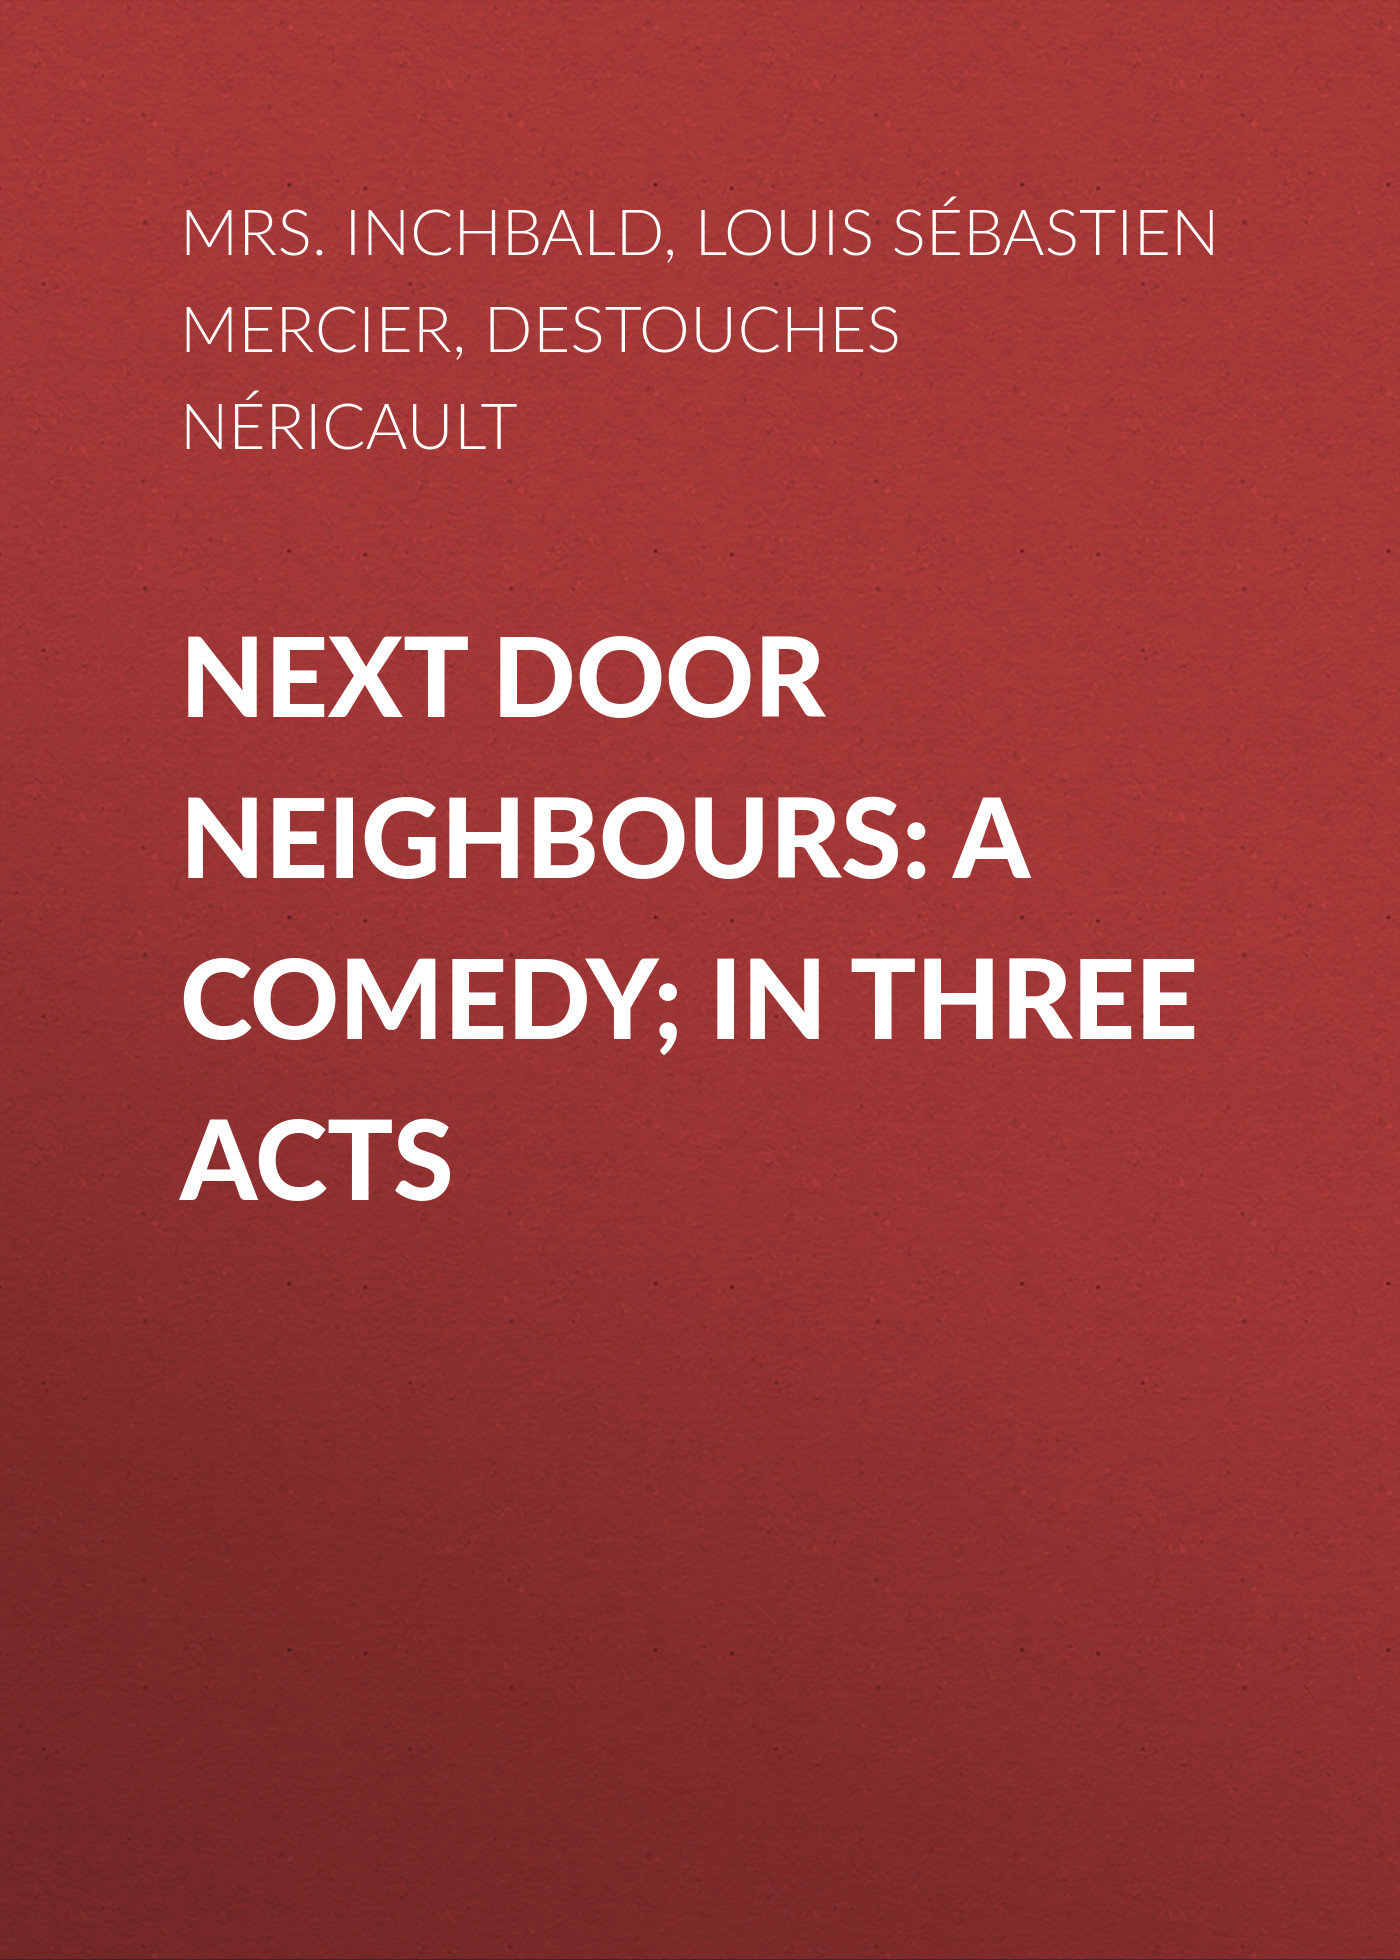 Louis Sébastien Mercier Next Door Neighbours: A Comedy; In Three Acts цена 2017